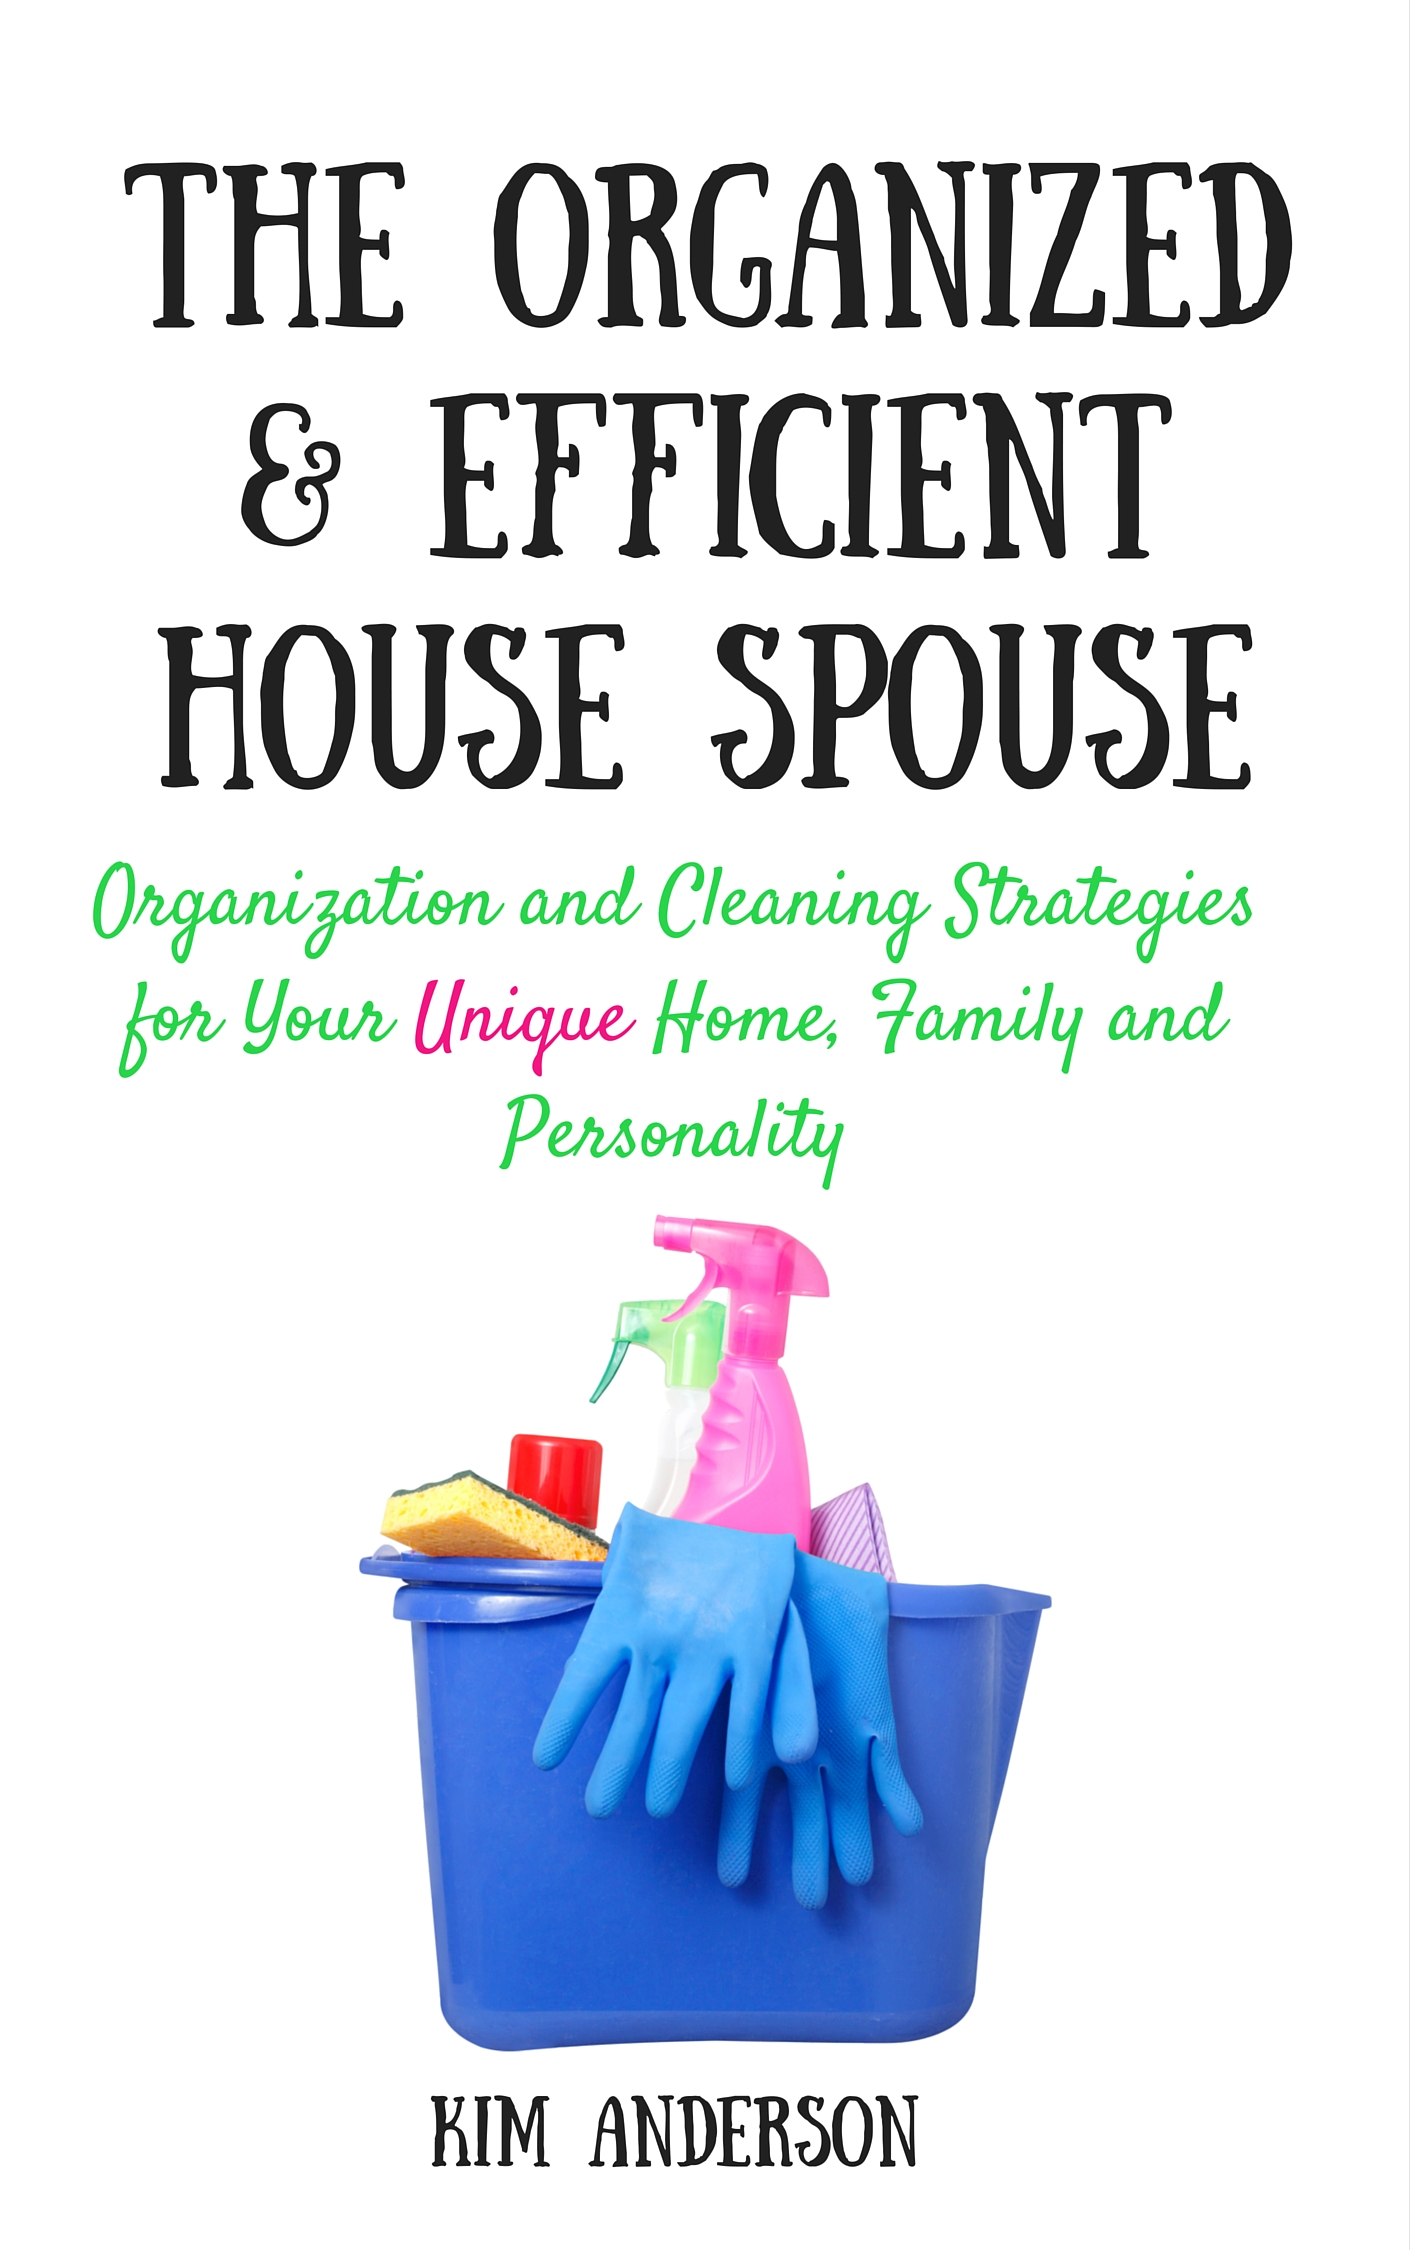 The Organized & Efficient House Spouse(1)